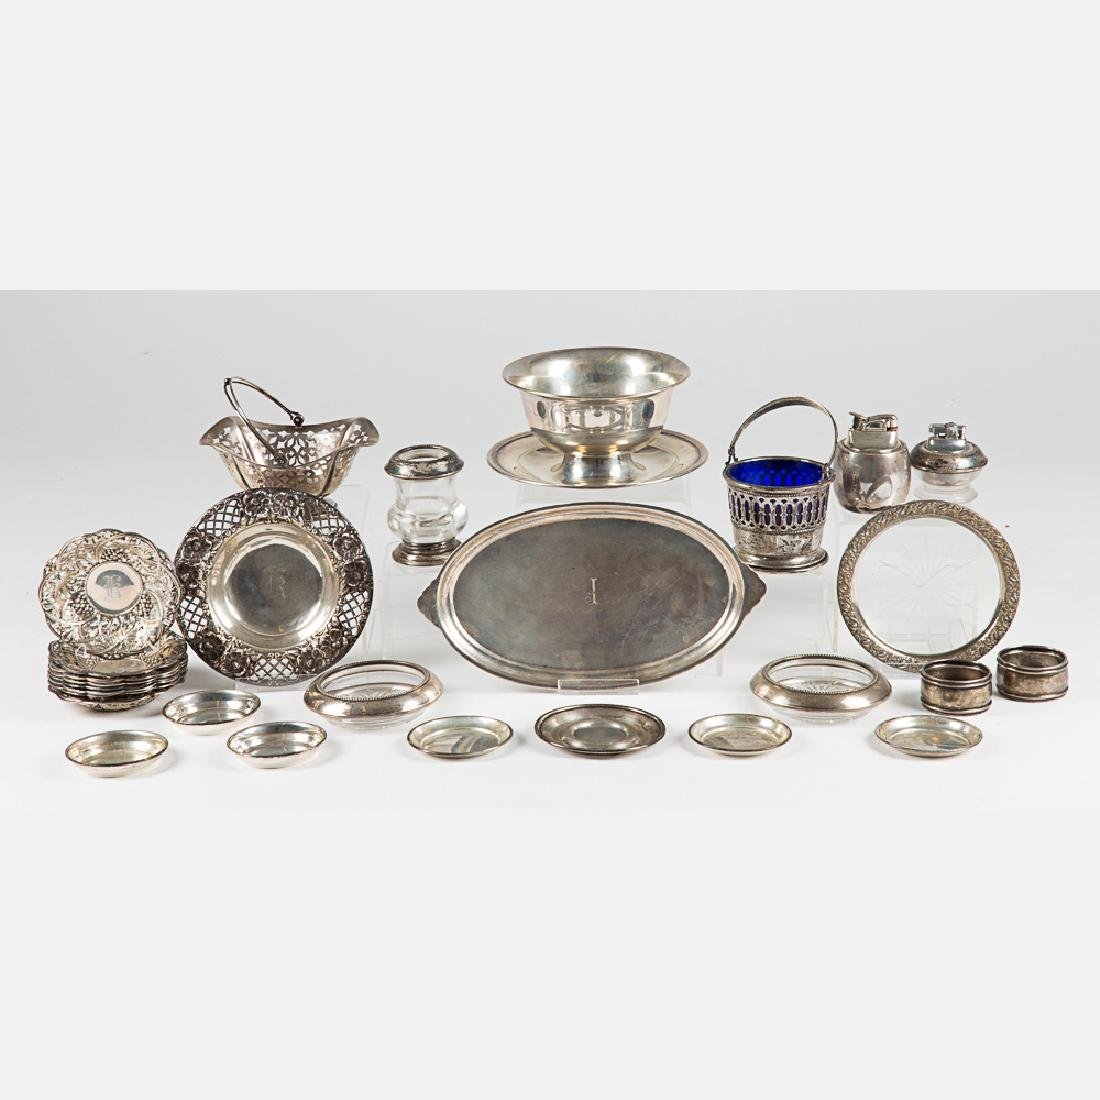 A Miscellaneous Collection of Sterling Silver Serving